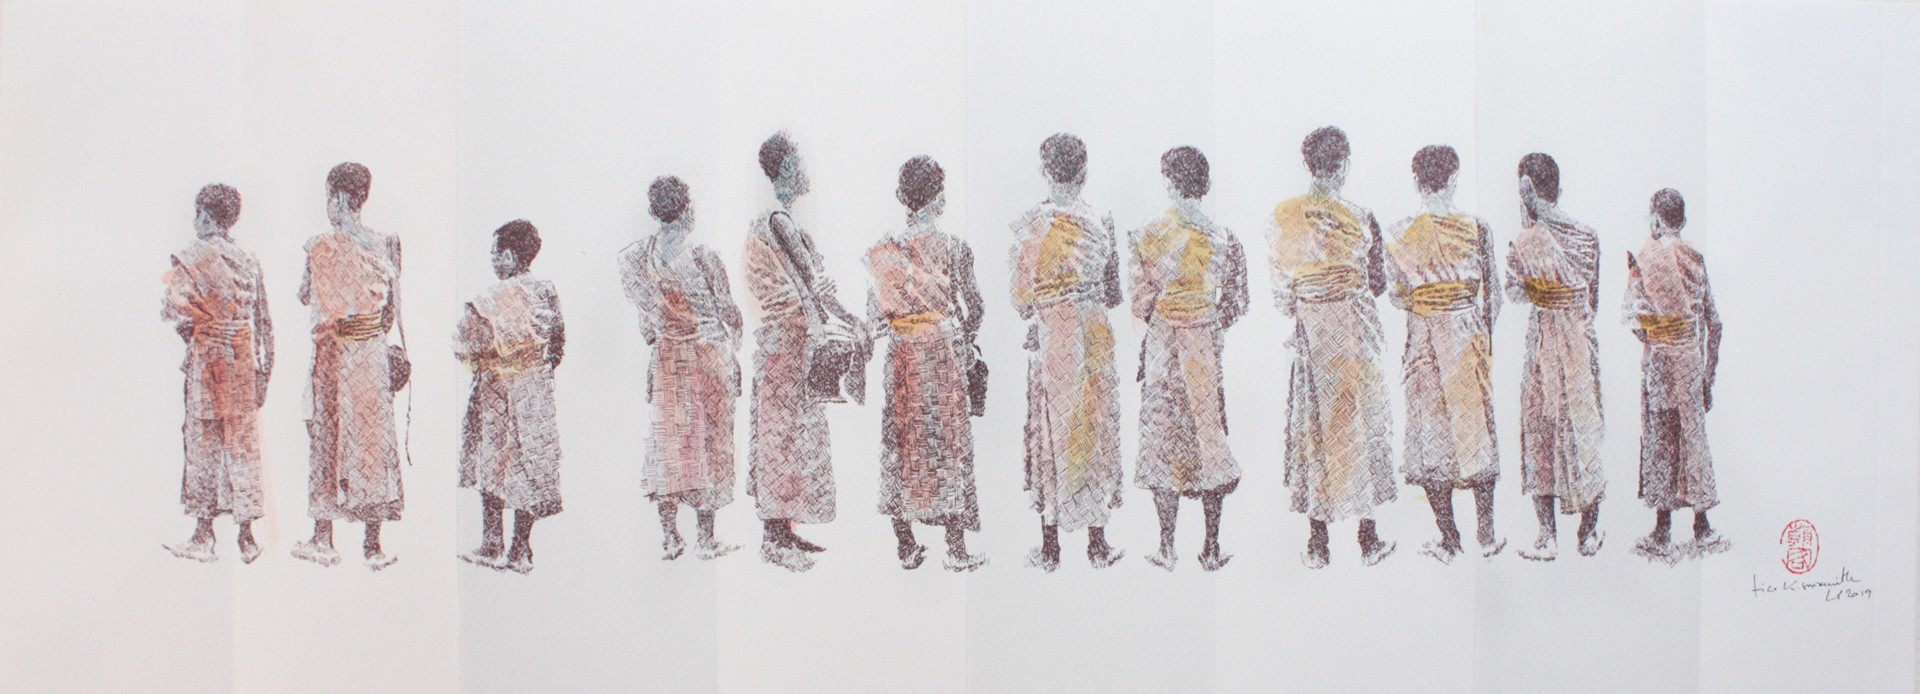 Alms Giving Procession: Print Series IIII by Tiao Nithakhong Somsanith